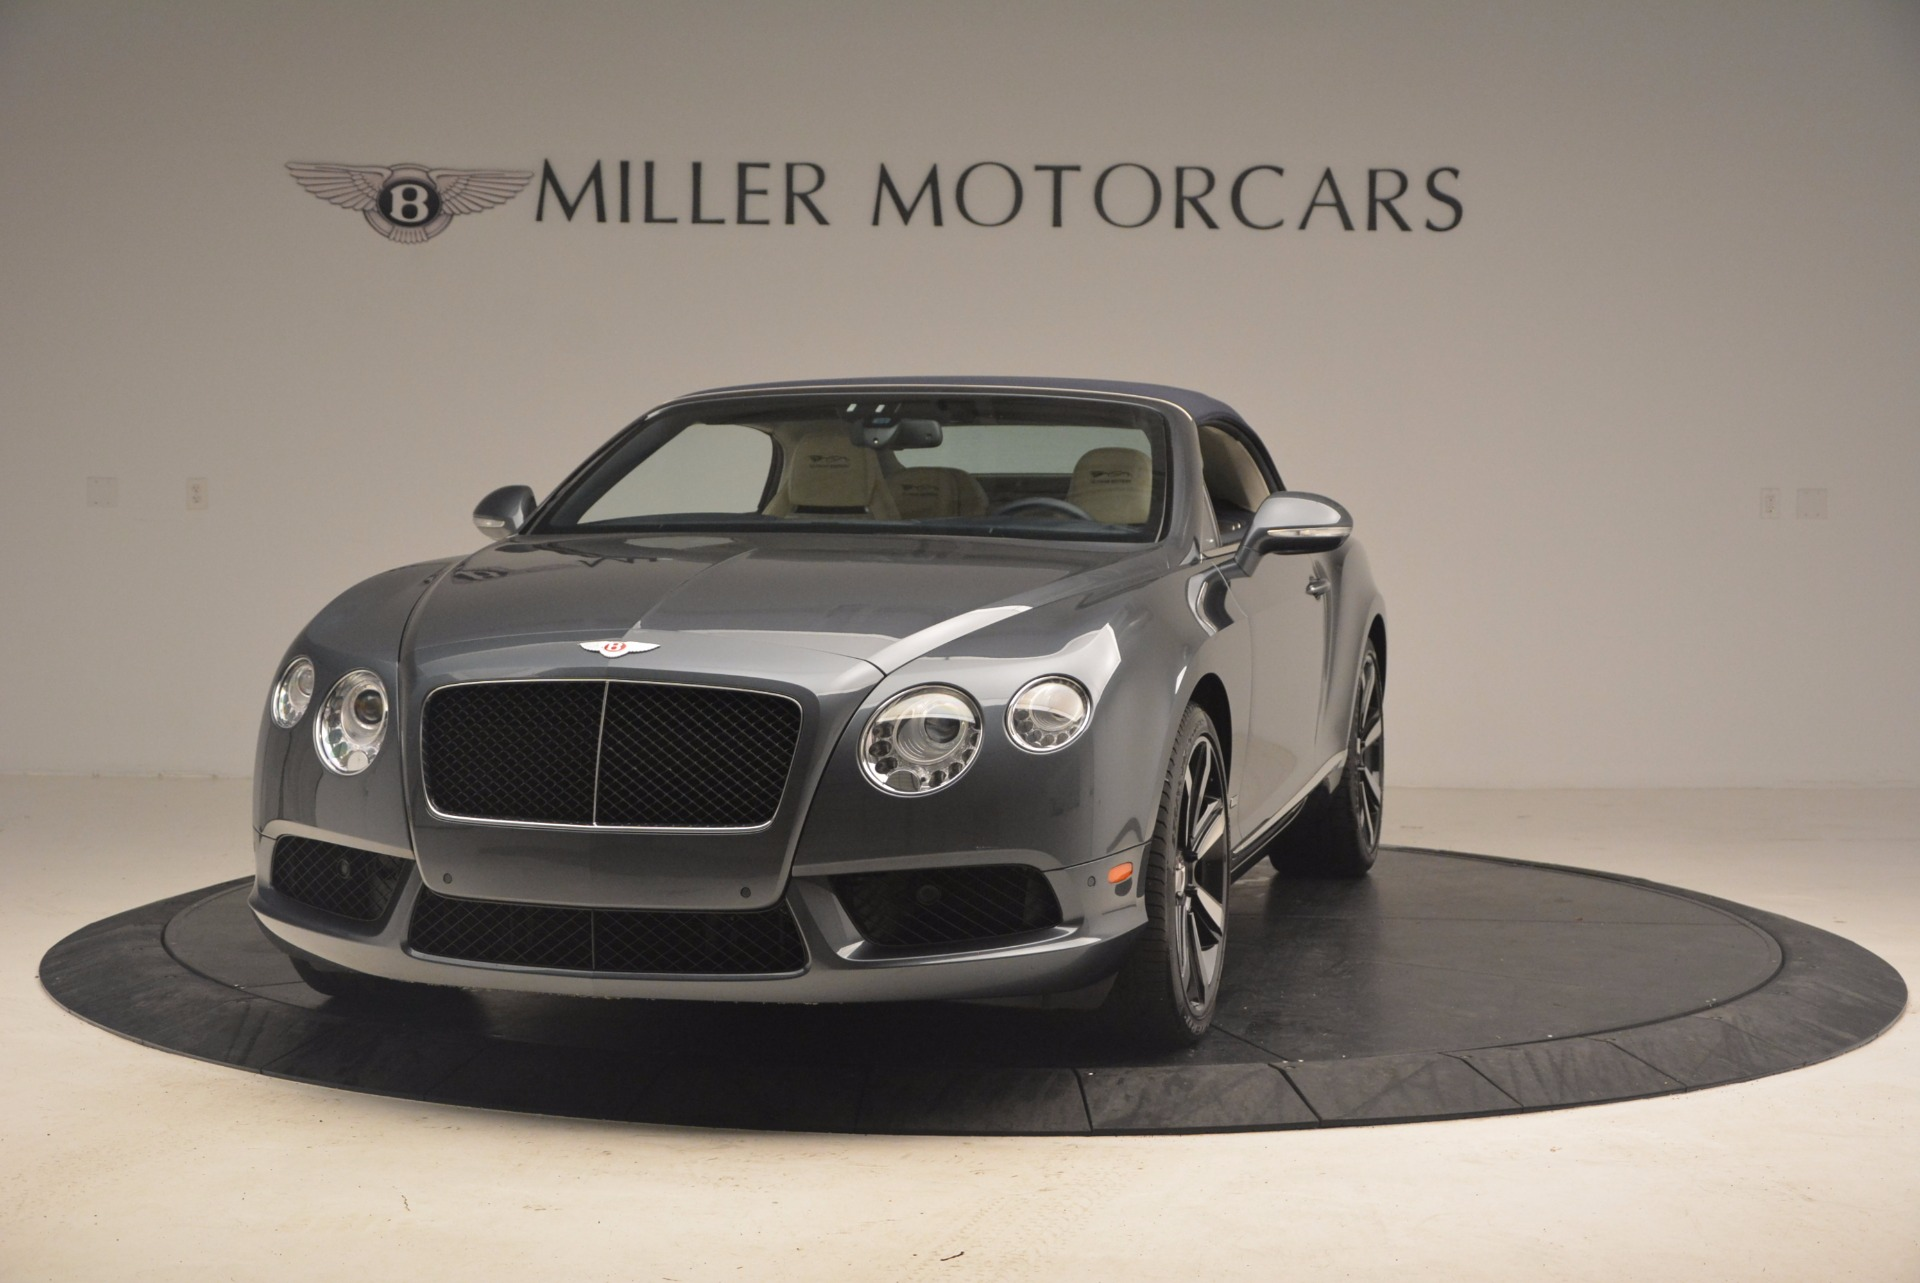 Used 2013 Bentley Continental GT V8 Le Mans Edition, 1 of 48 For Sale In Greenwich, CT. Alfa Romeo of Greenwich, 7226 1288_p14